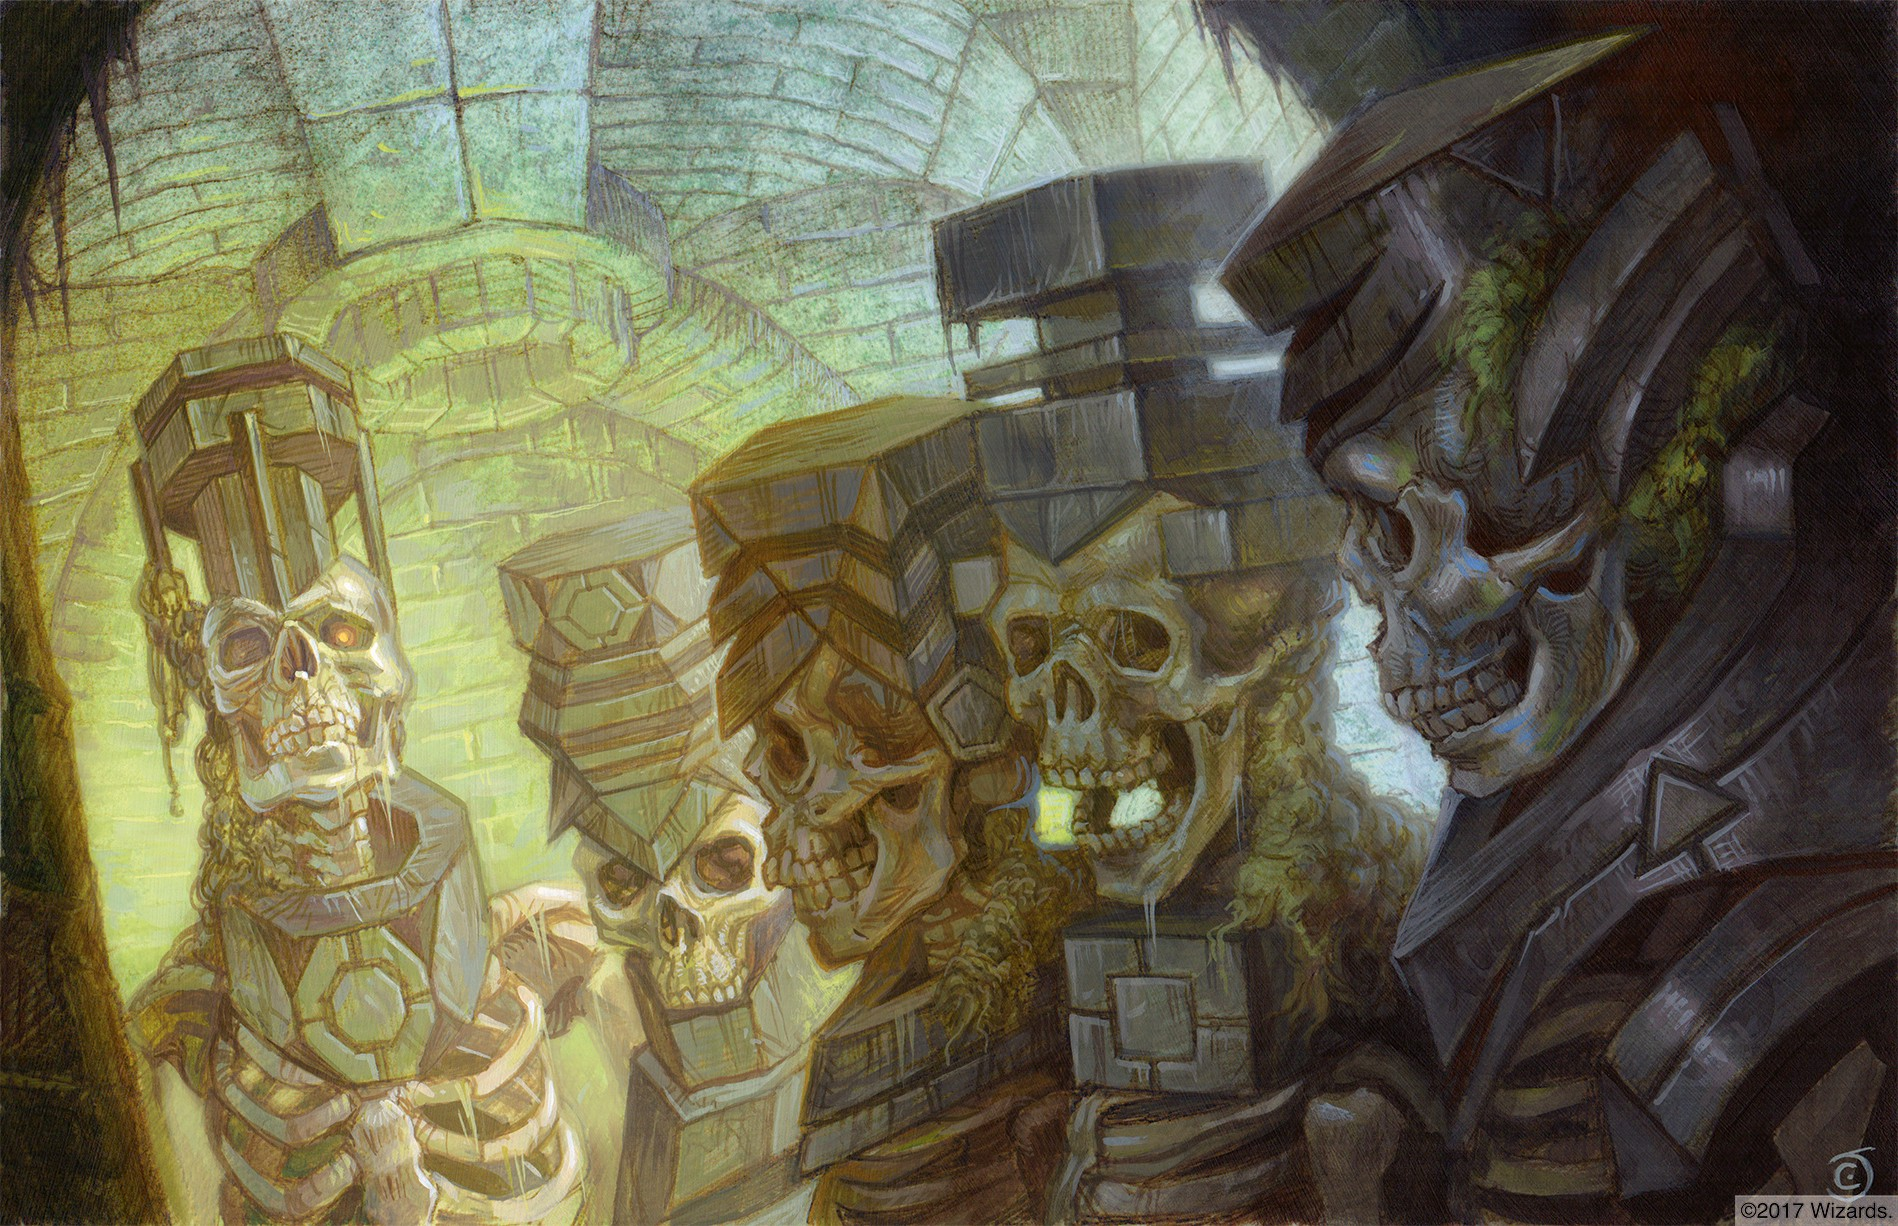 They five skeleton keys from Acererak's dungeon each display their different geometrical shapes.